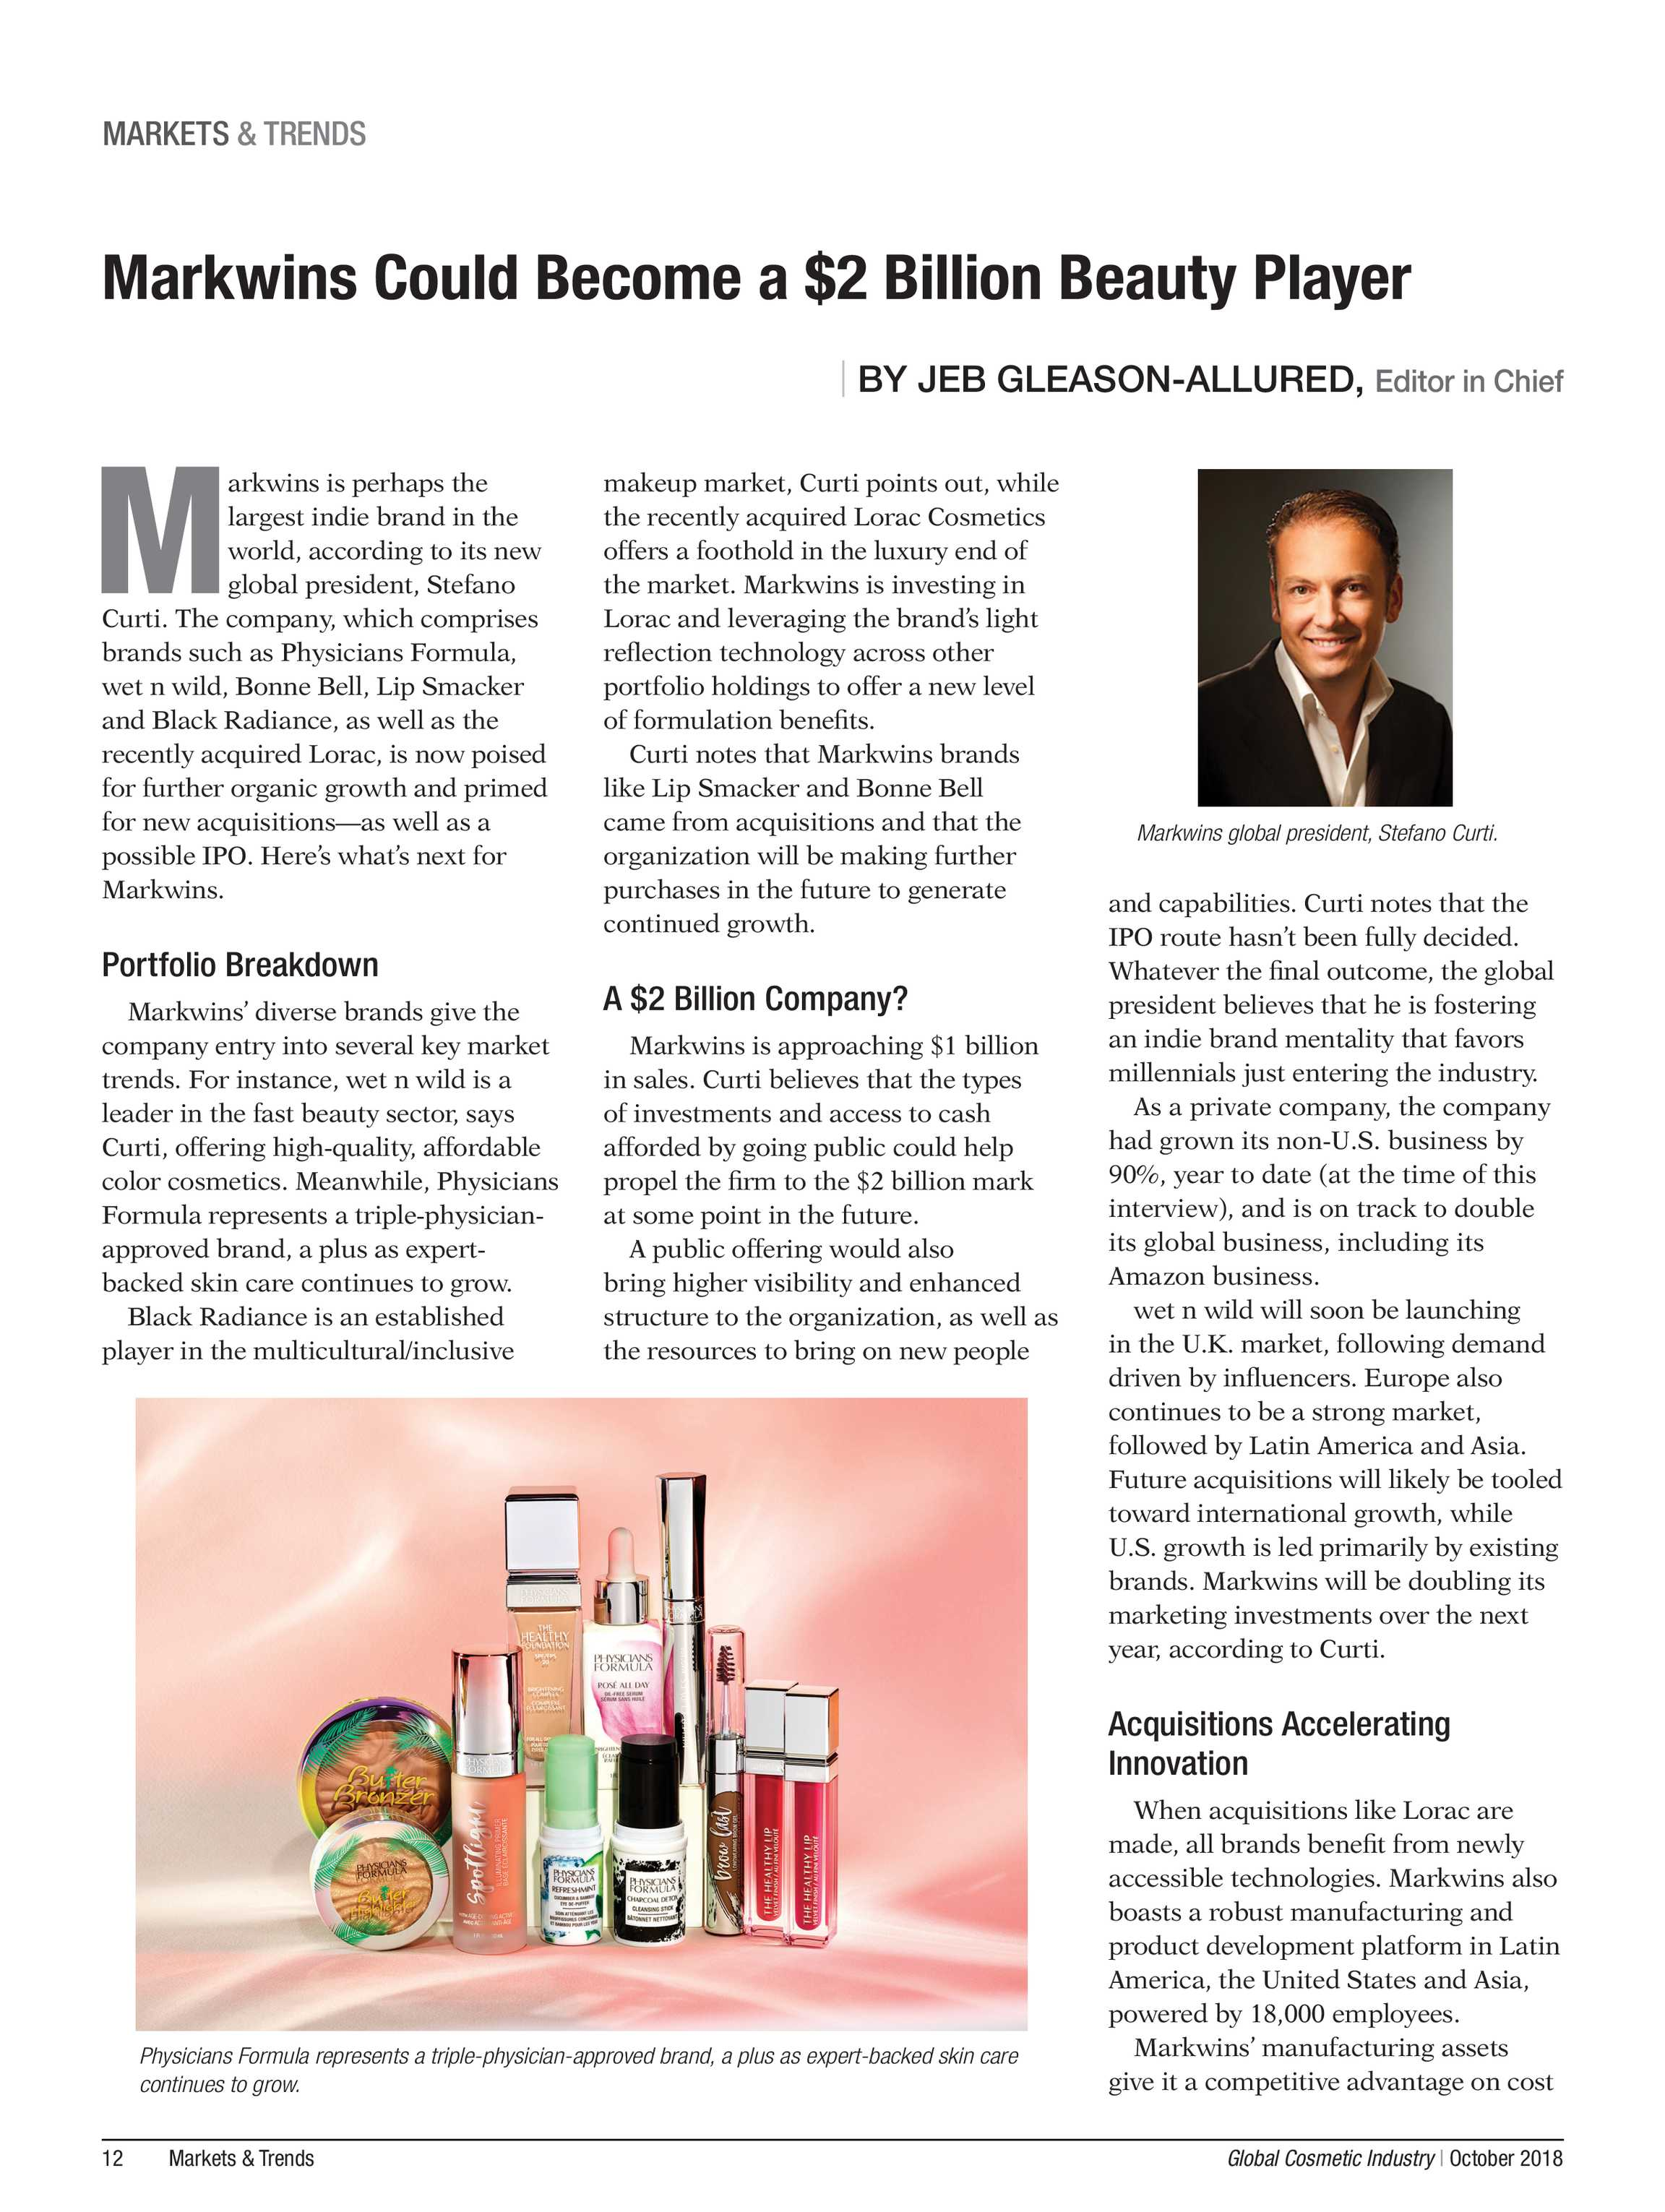 Global Cosmetic Industry Magazine - October 2018 - page 12